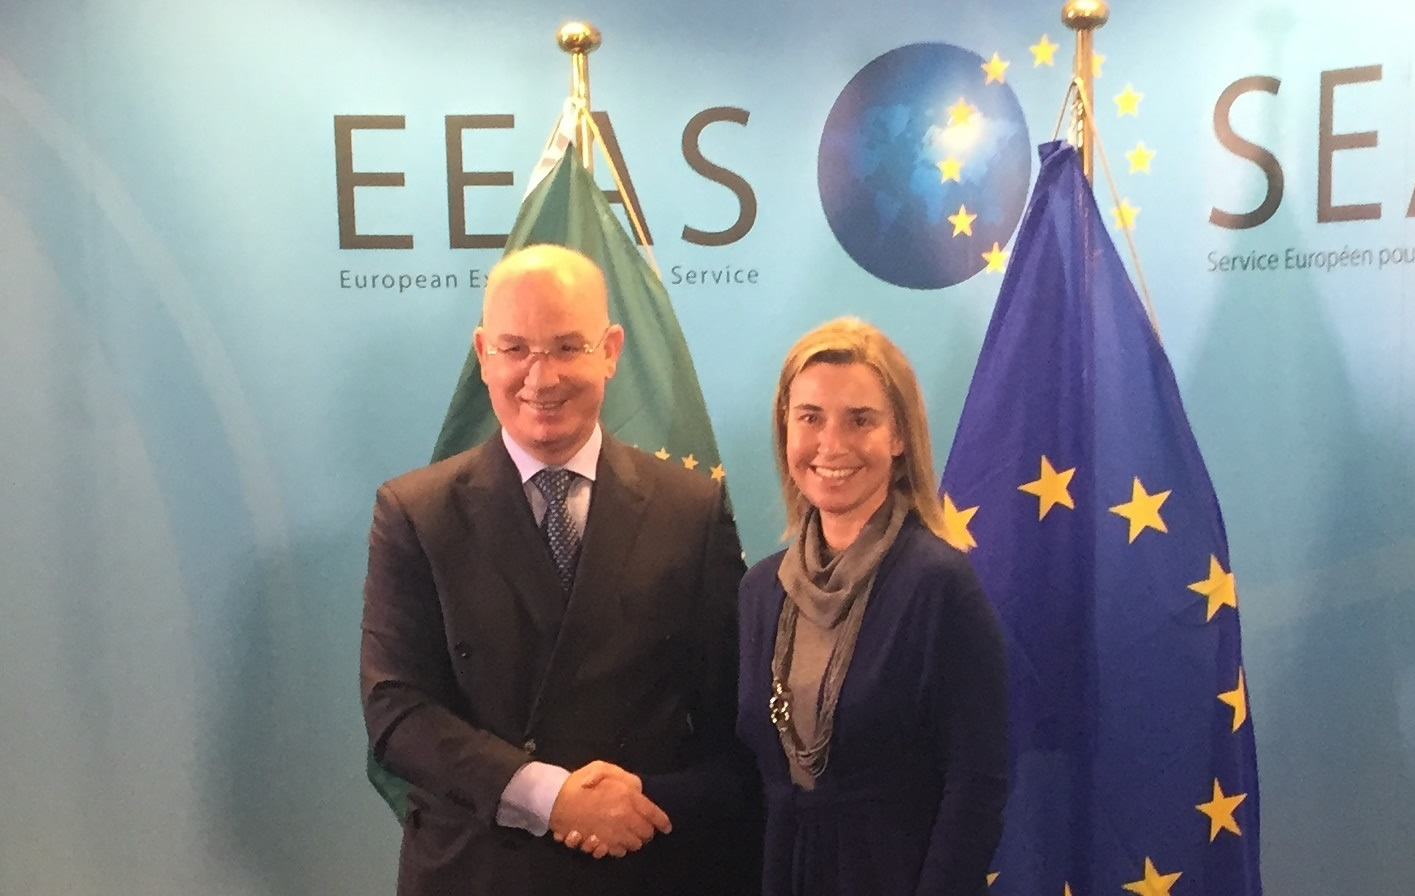 Commissioner for Peace and Security meets with the European Union High Representative for Foreign Affairs and Security Policy